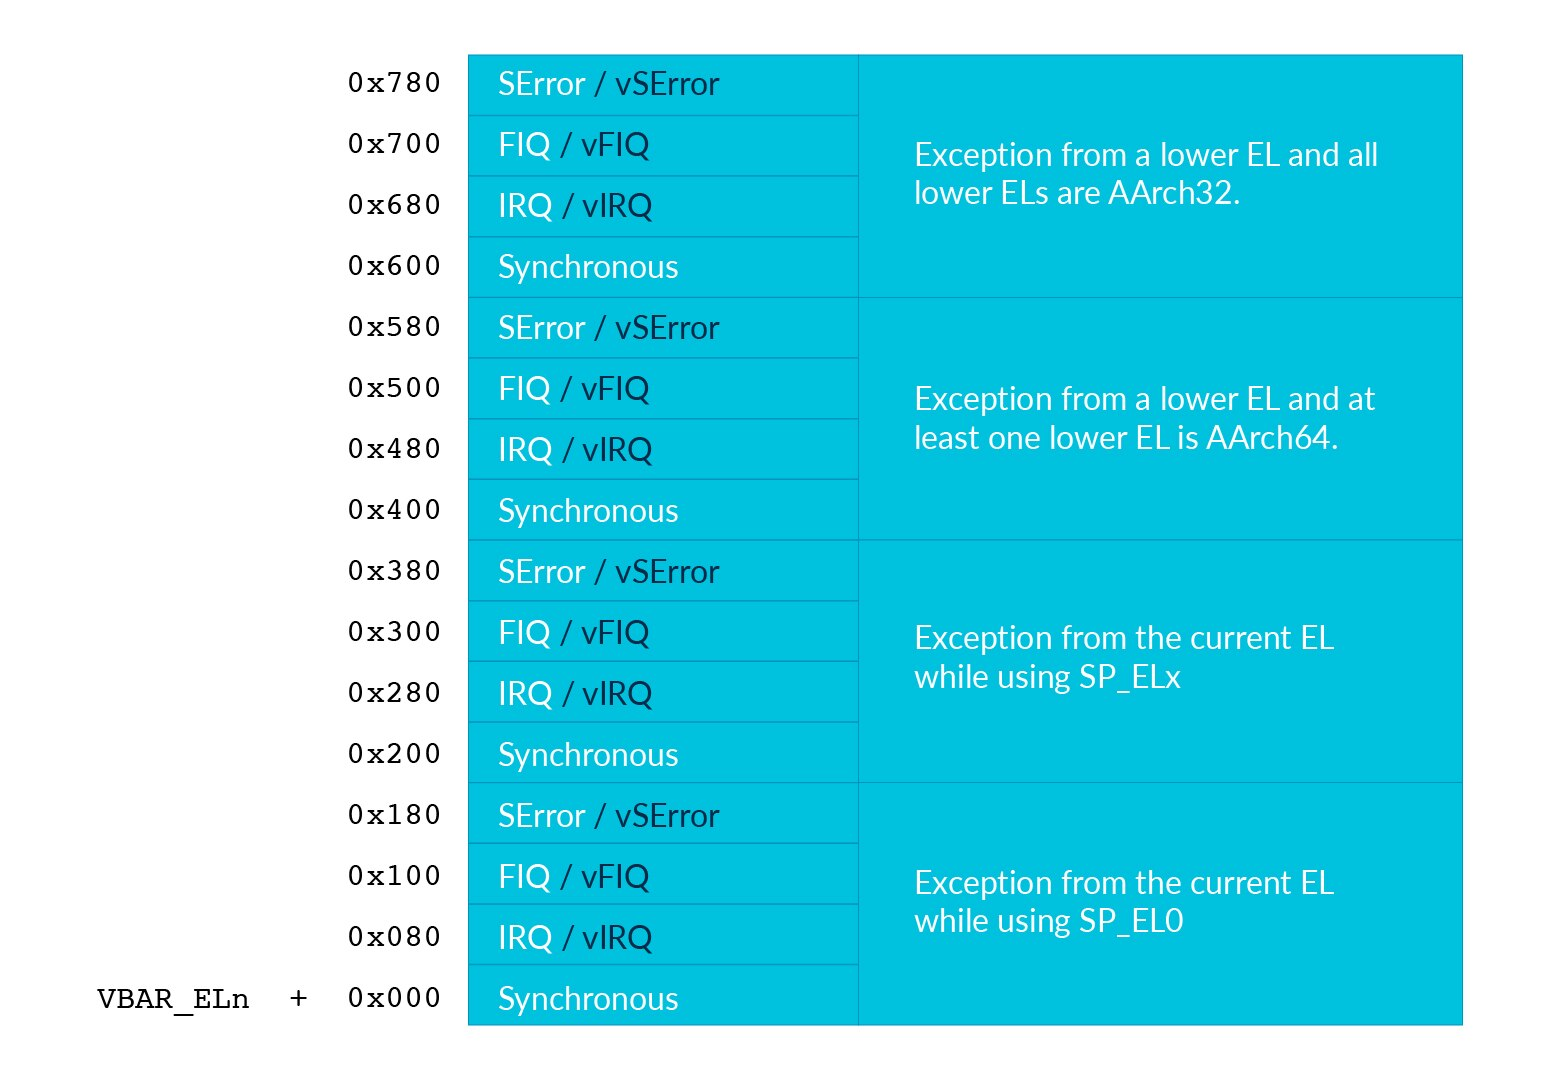 This image shows the vector table for Armv8-A.